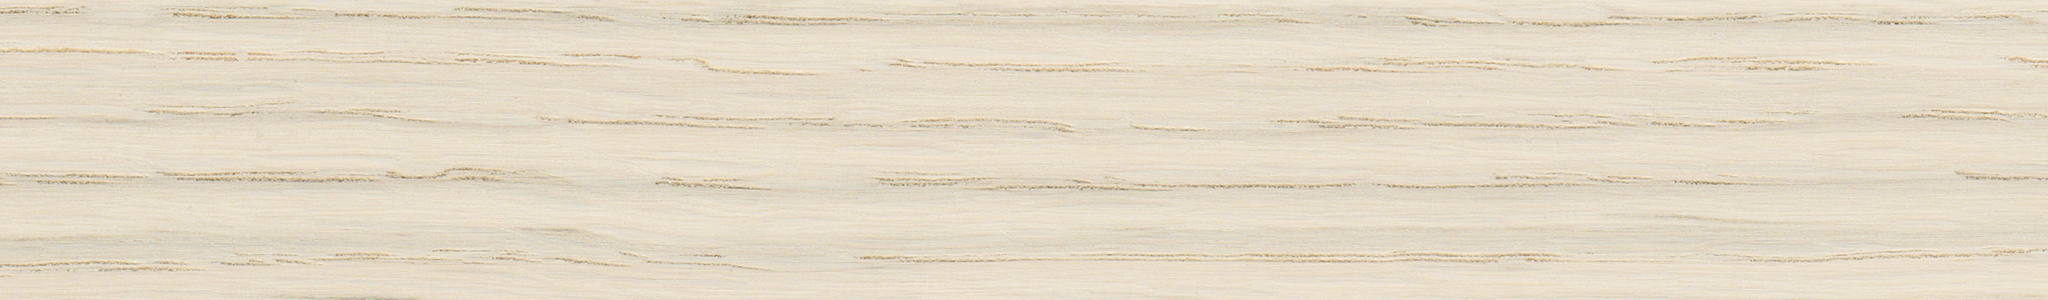 HD 74010 Veneer Edge American Oak Fleece